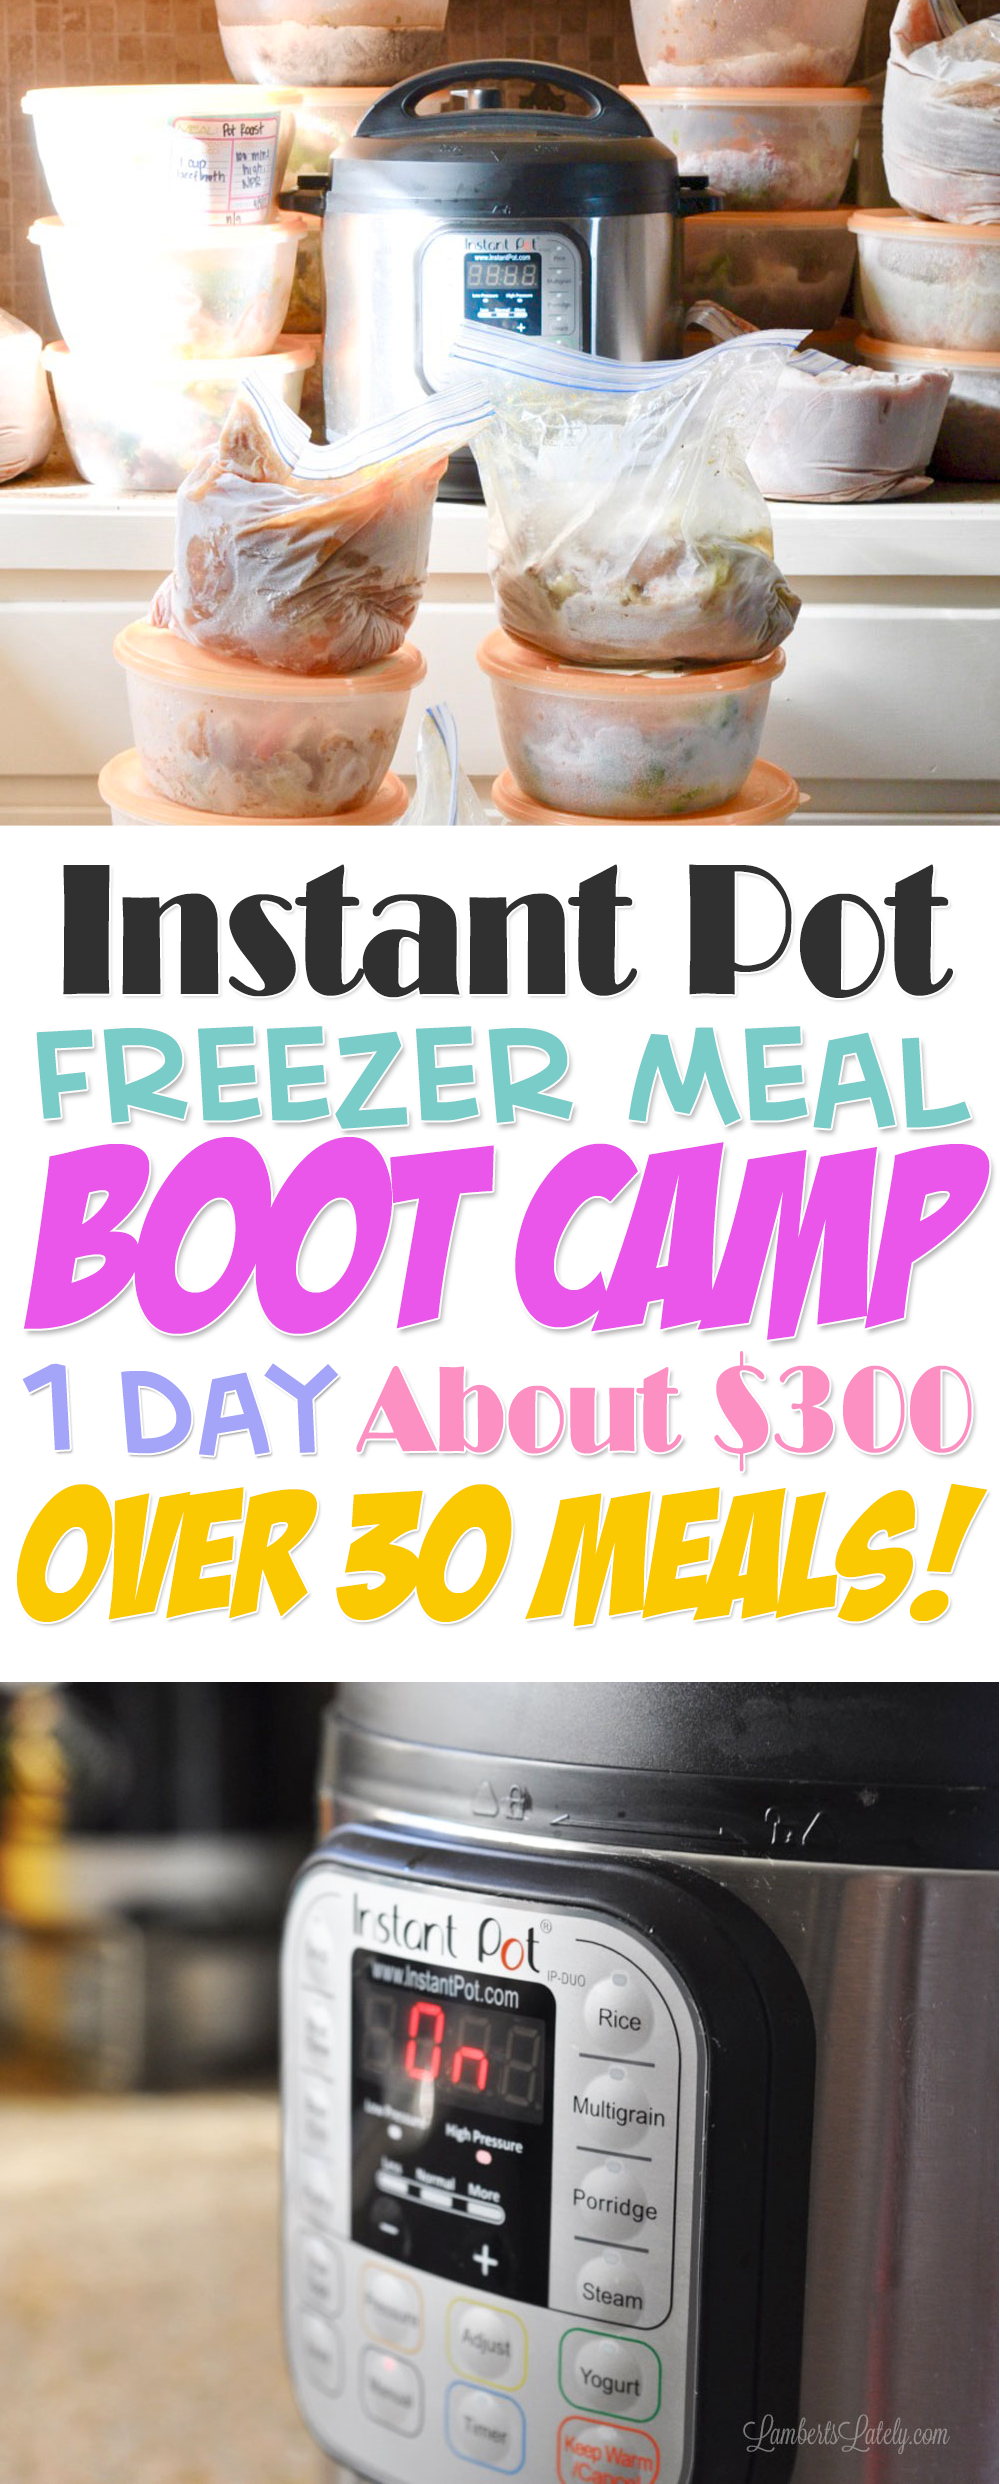 The original instant pot freezer meal boot camp one day of work instant pot freezer meal boot camp cheap easy monthly cooking dinner ideas forumfinder Choice Image